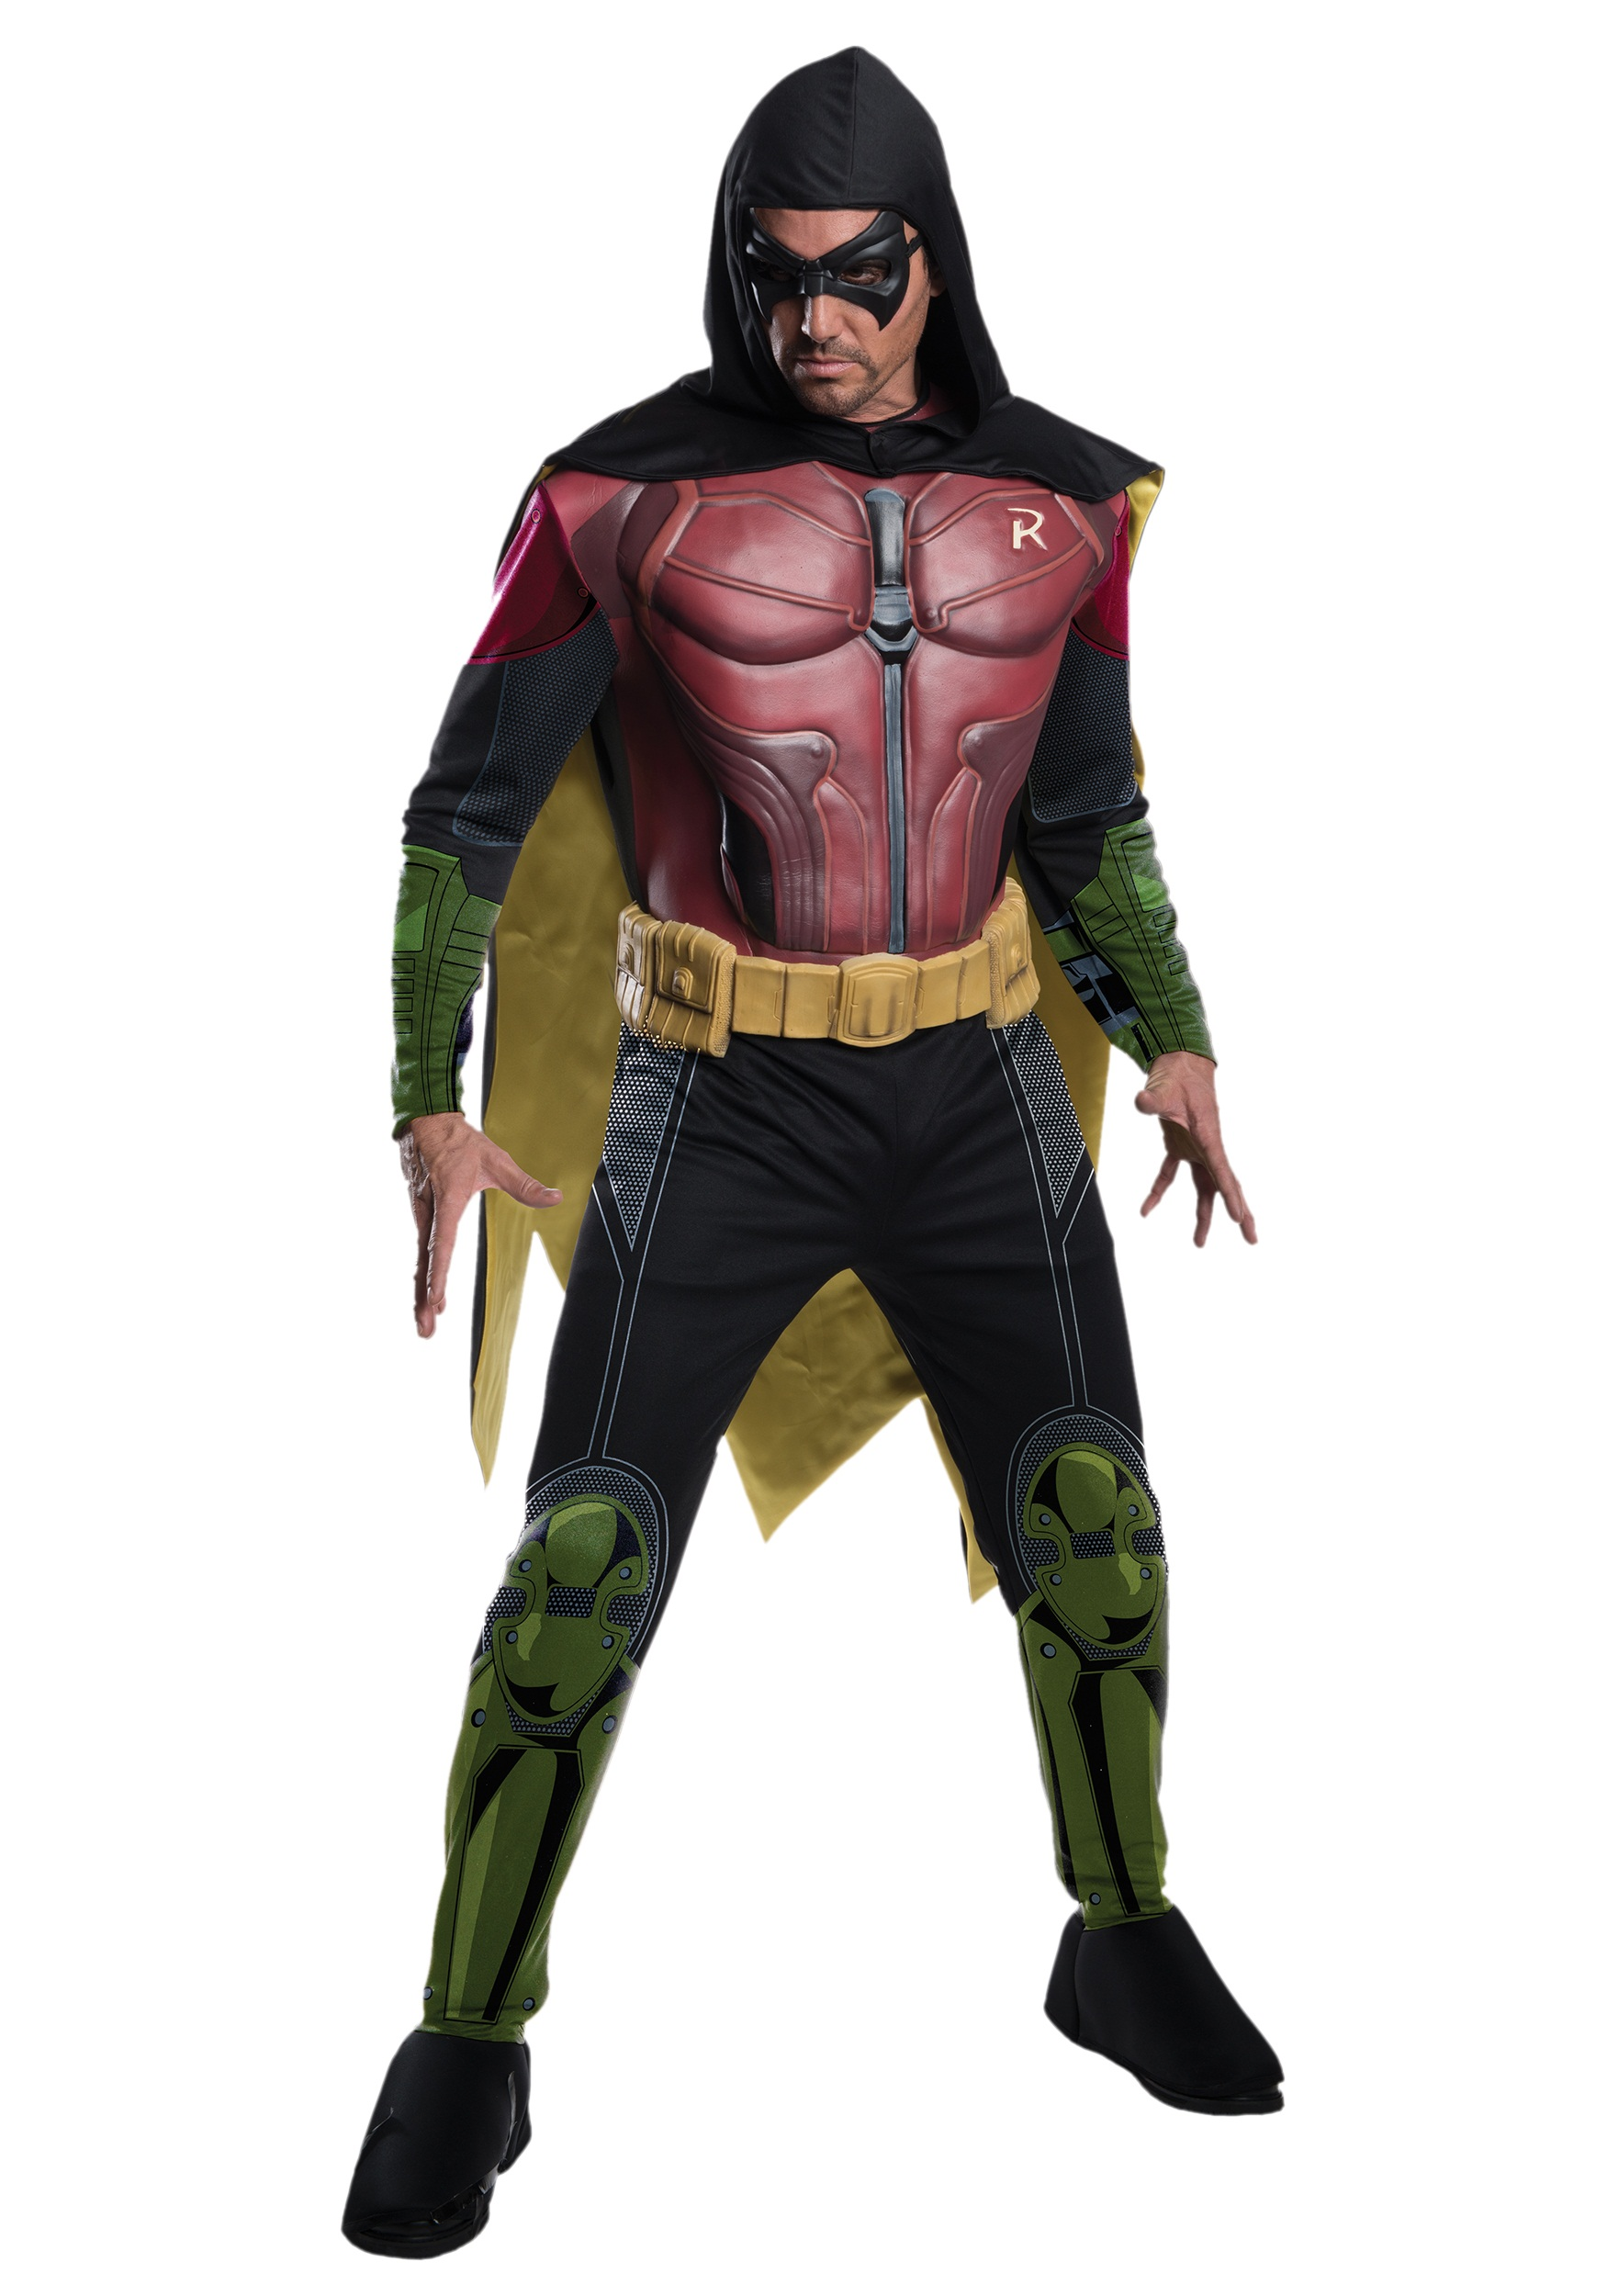 http://images.halloweencostumes.com/products/22607/1-1/robin-arkham-origins-.jpg